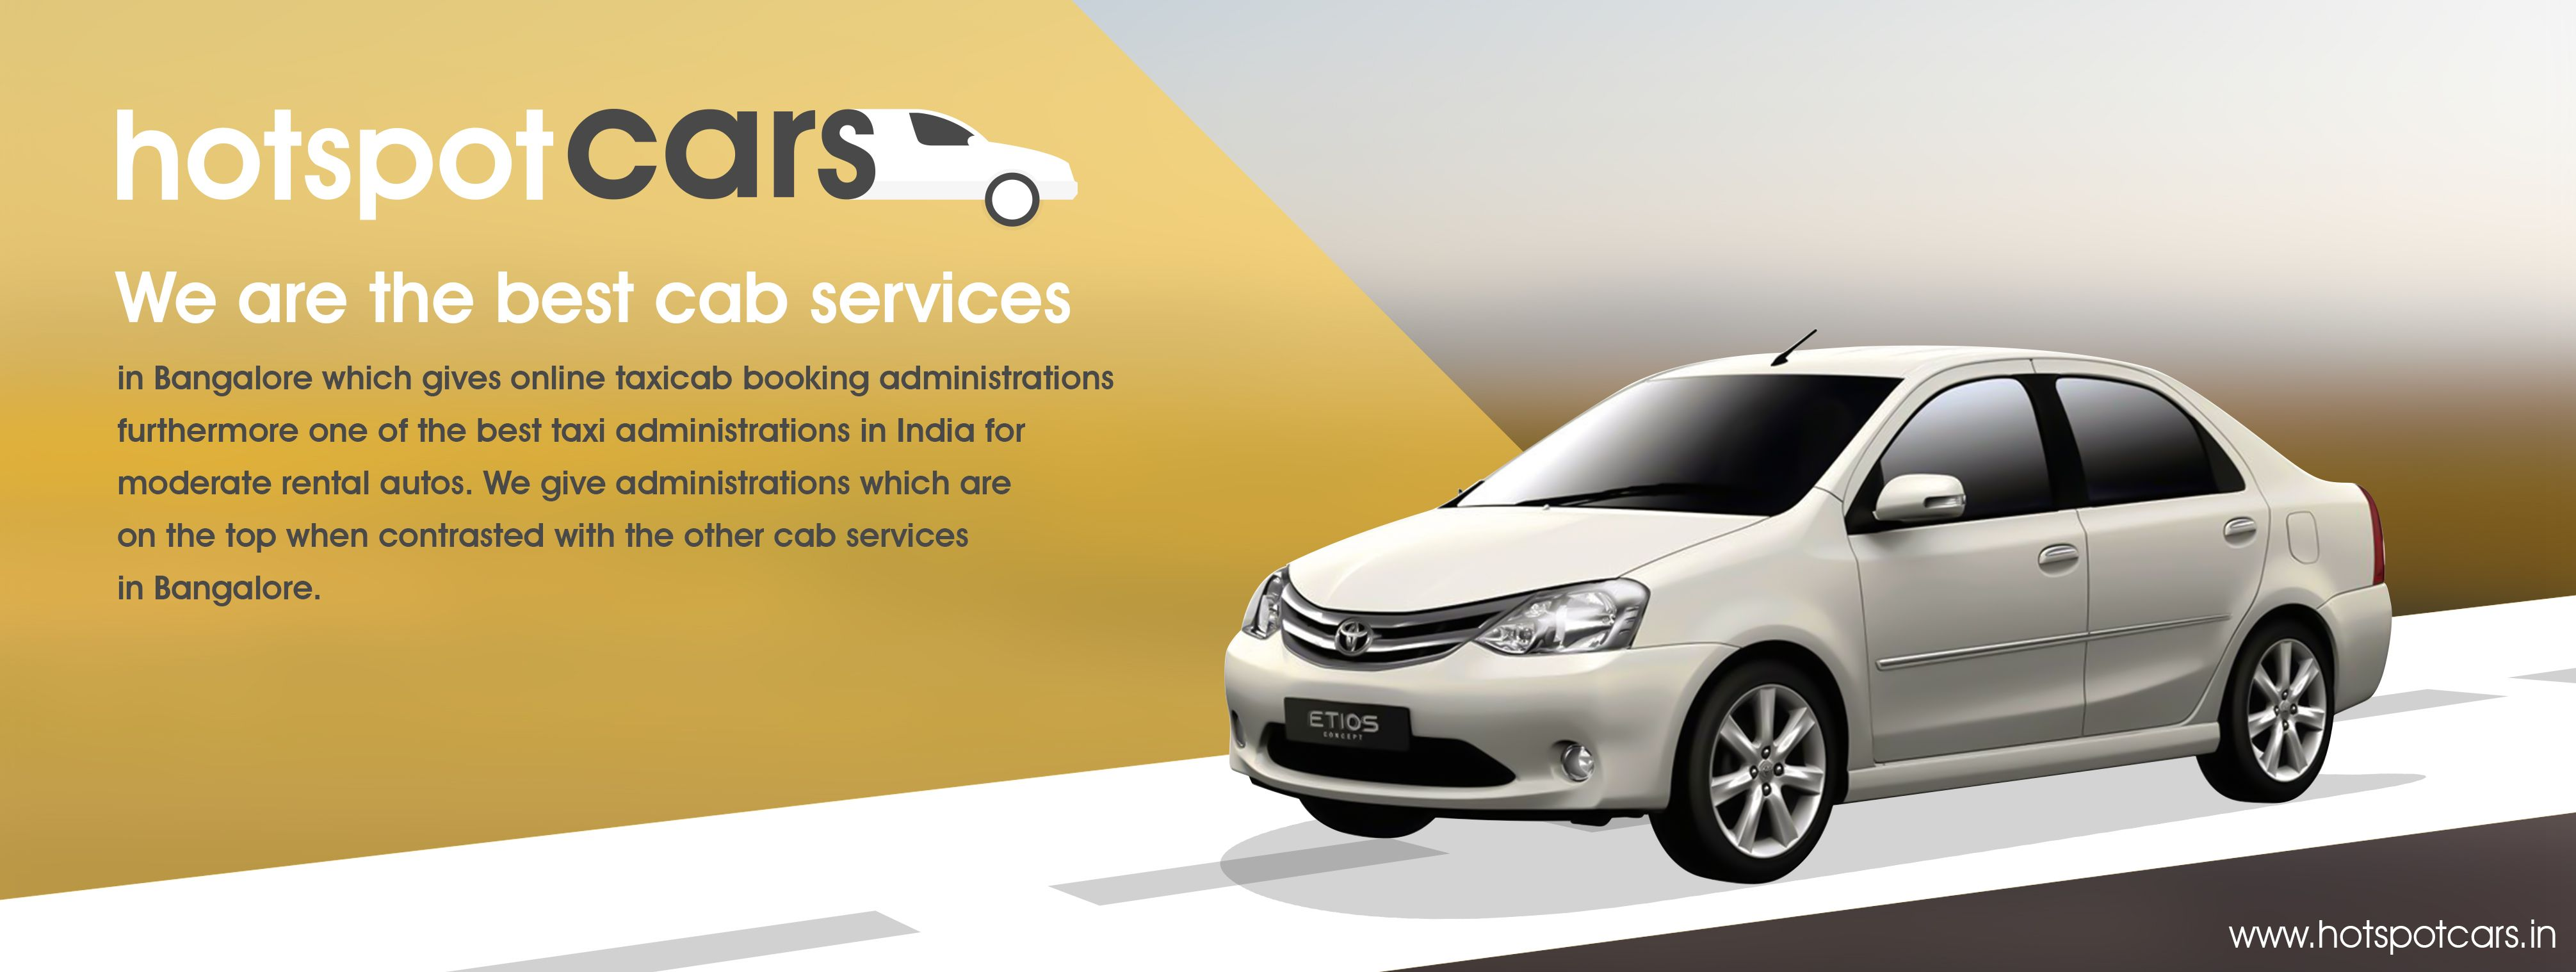 Pin By Ritikamehra On Bangalore To Mysore Cab Services Car Rental